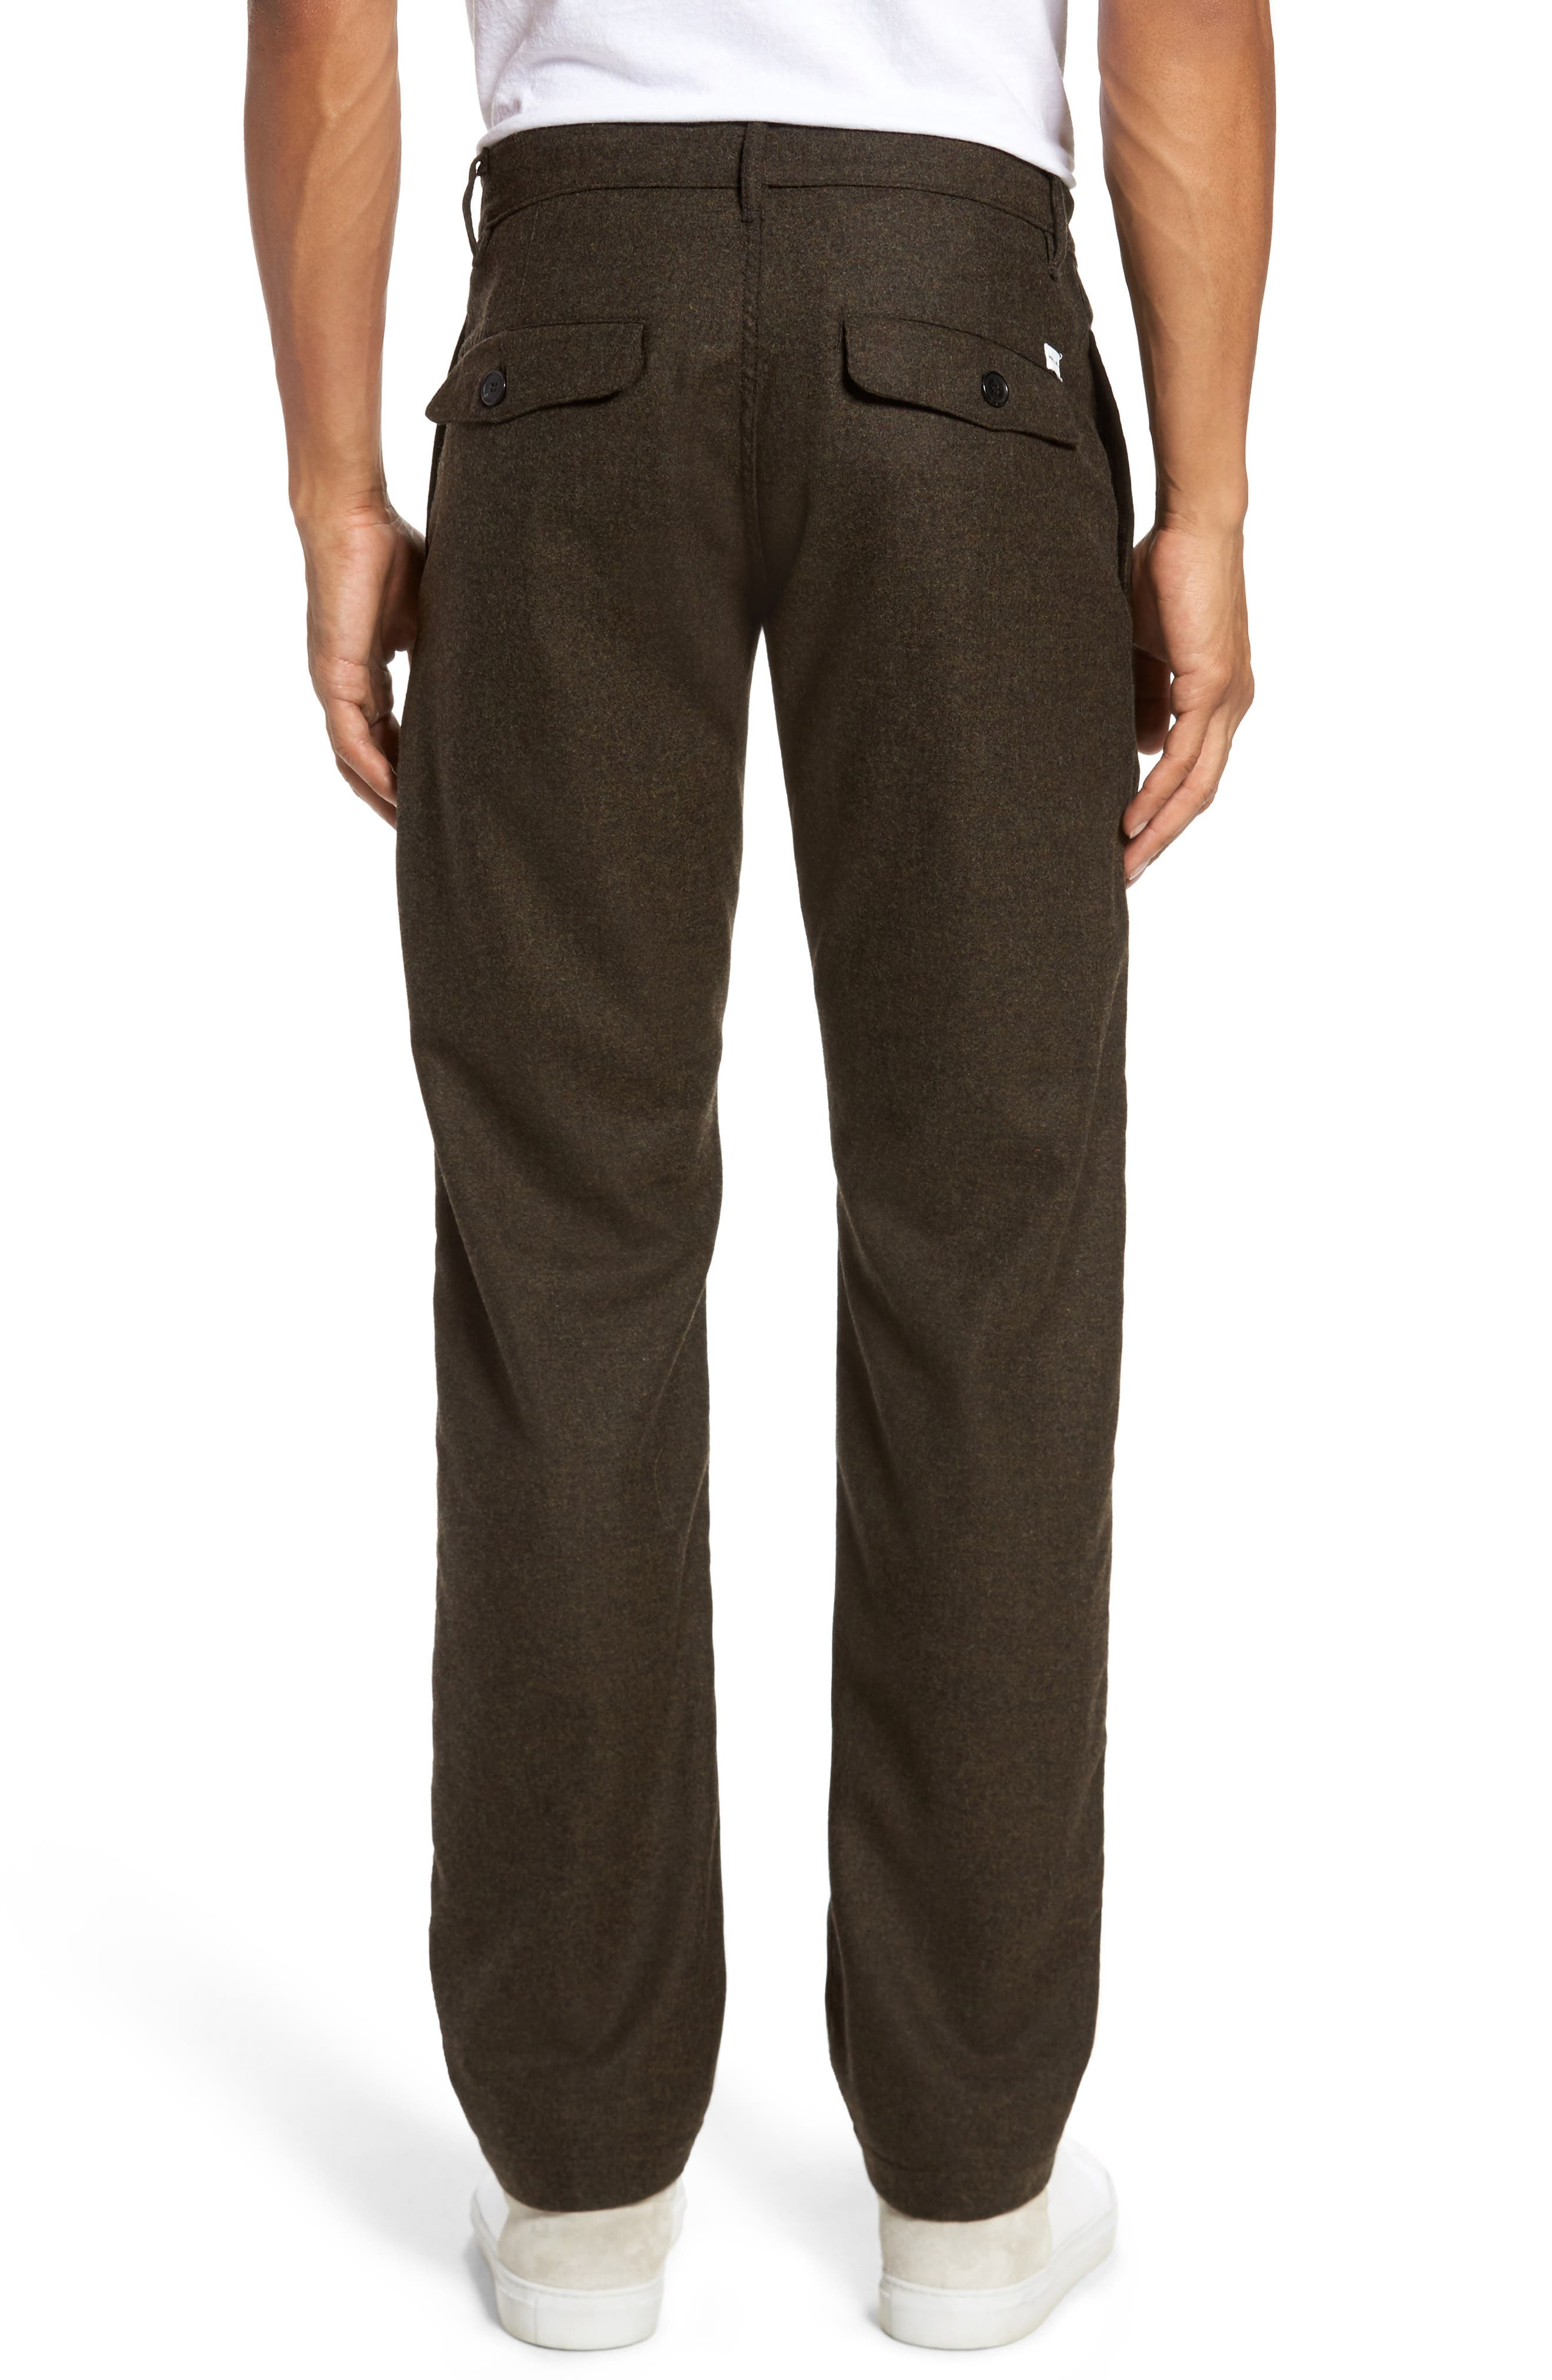 Wool & Cashmere Slim Straight Leg Chinos,                             Alternate thumbnail 2, color,                             Military